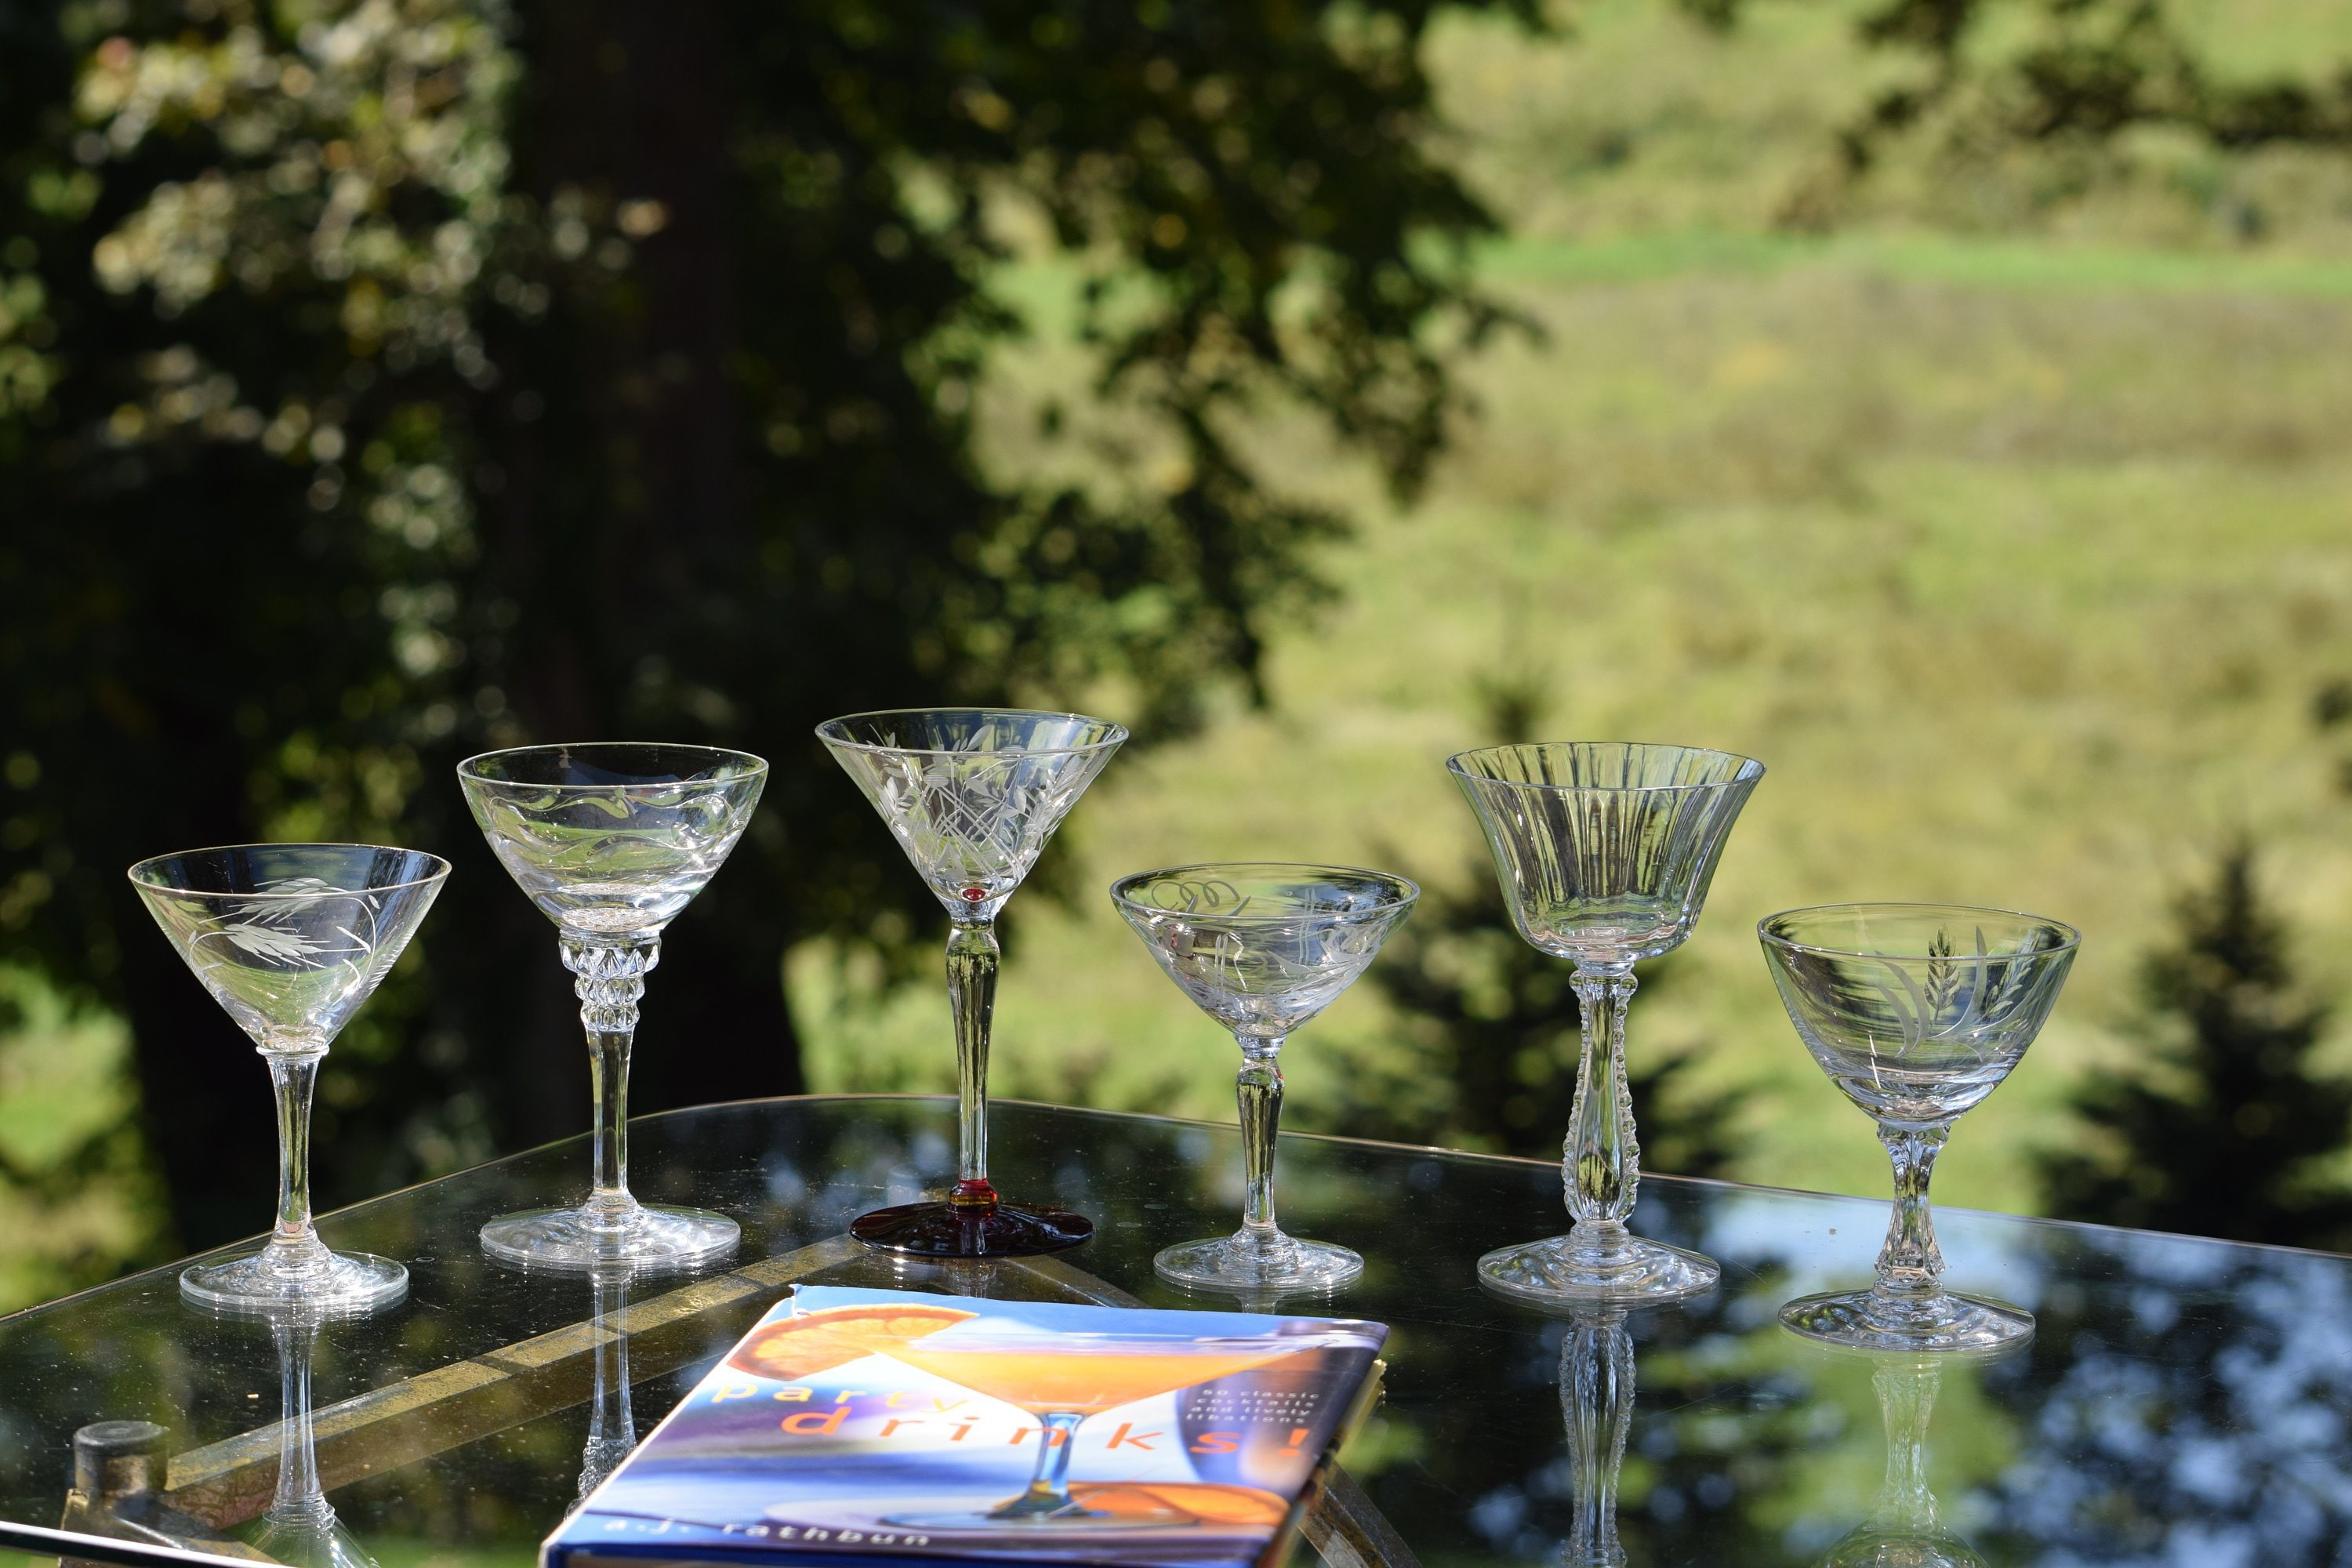 4 oz martini glasses vintage etched cocktail glasses set of 6 small oz six different glasses